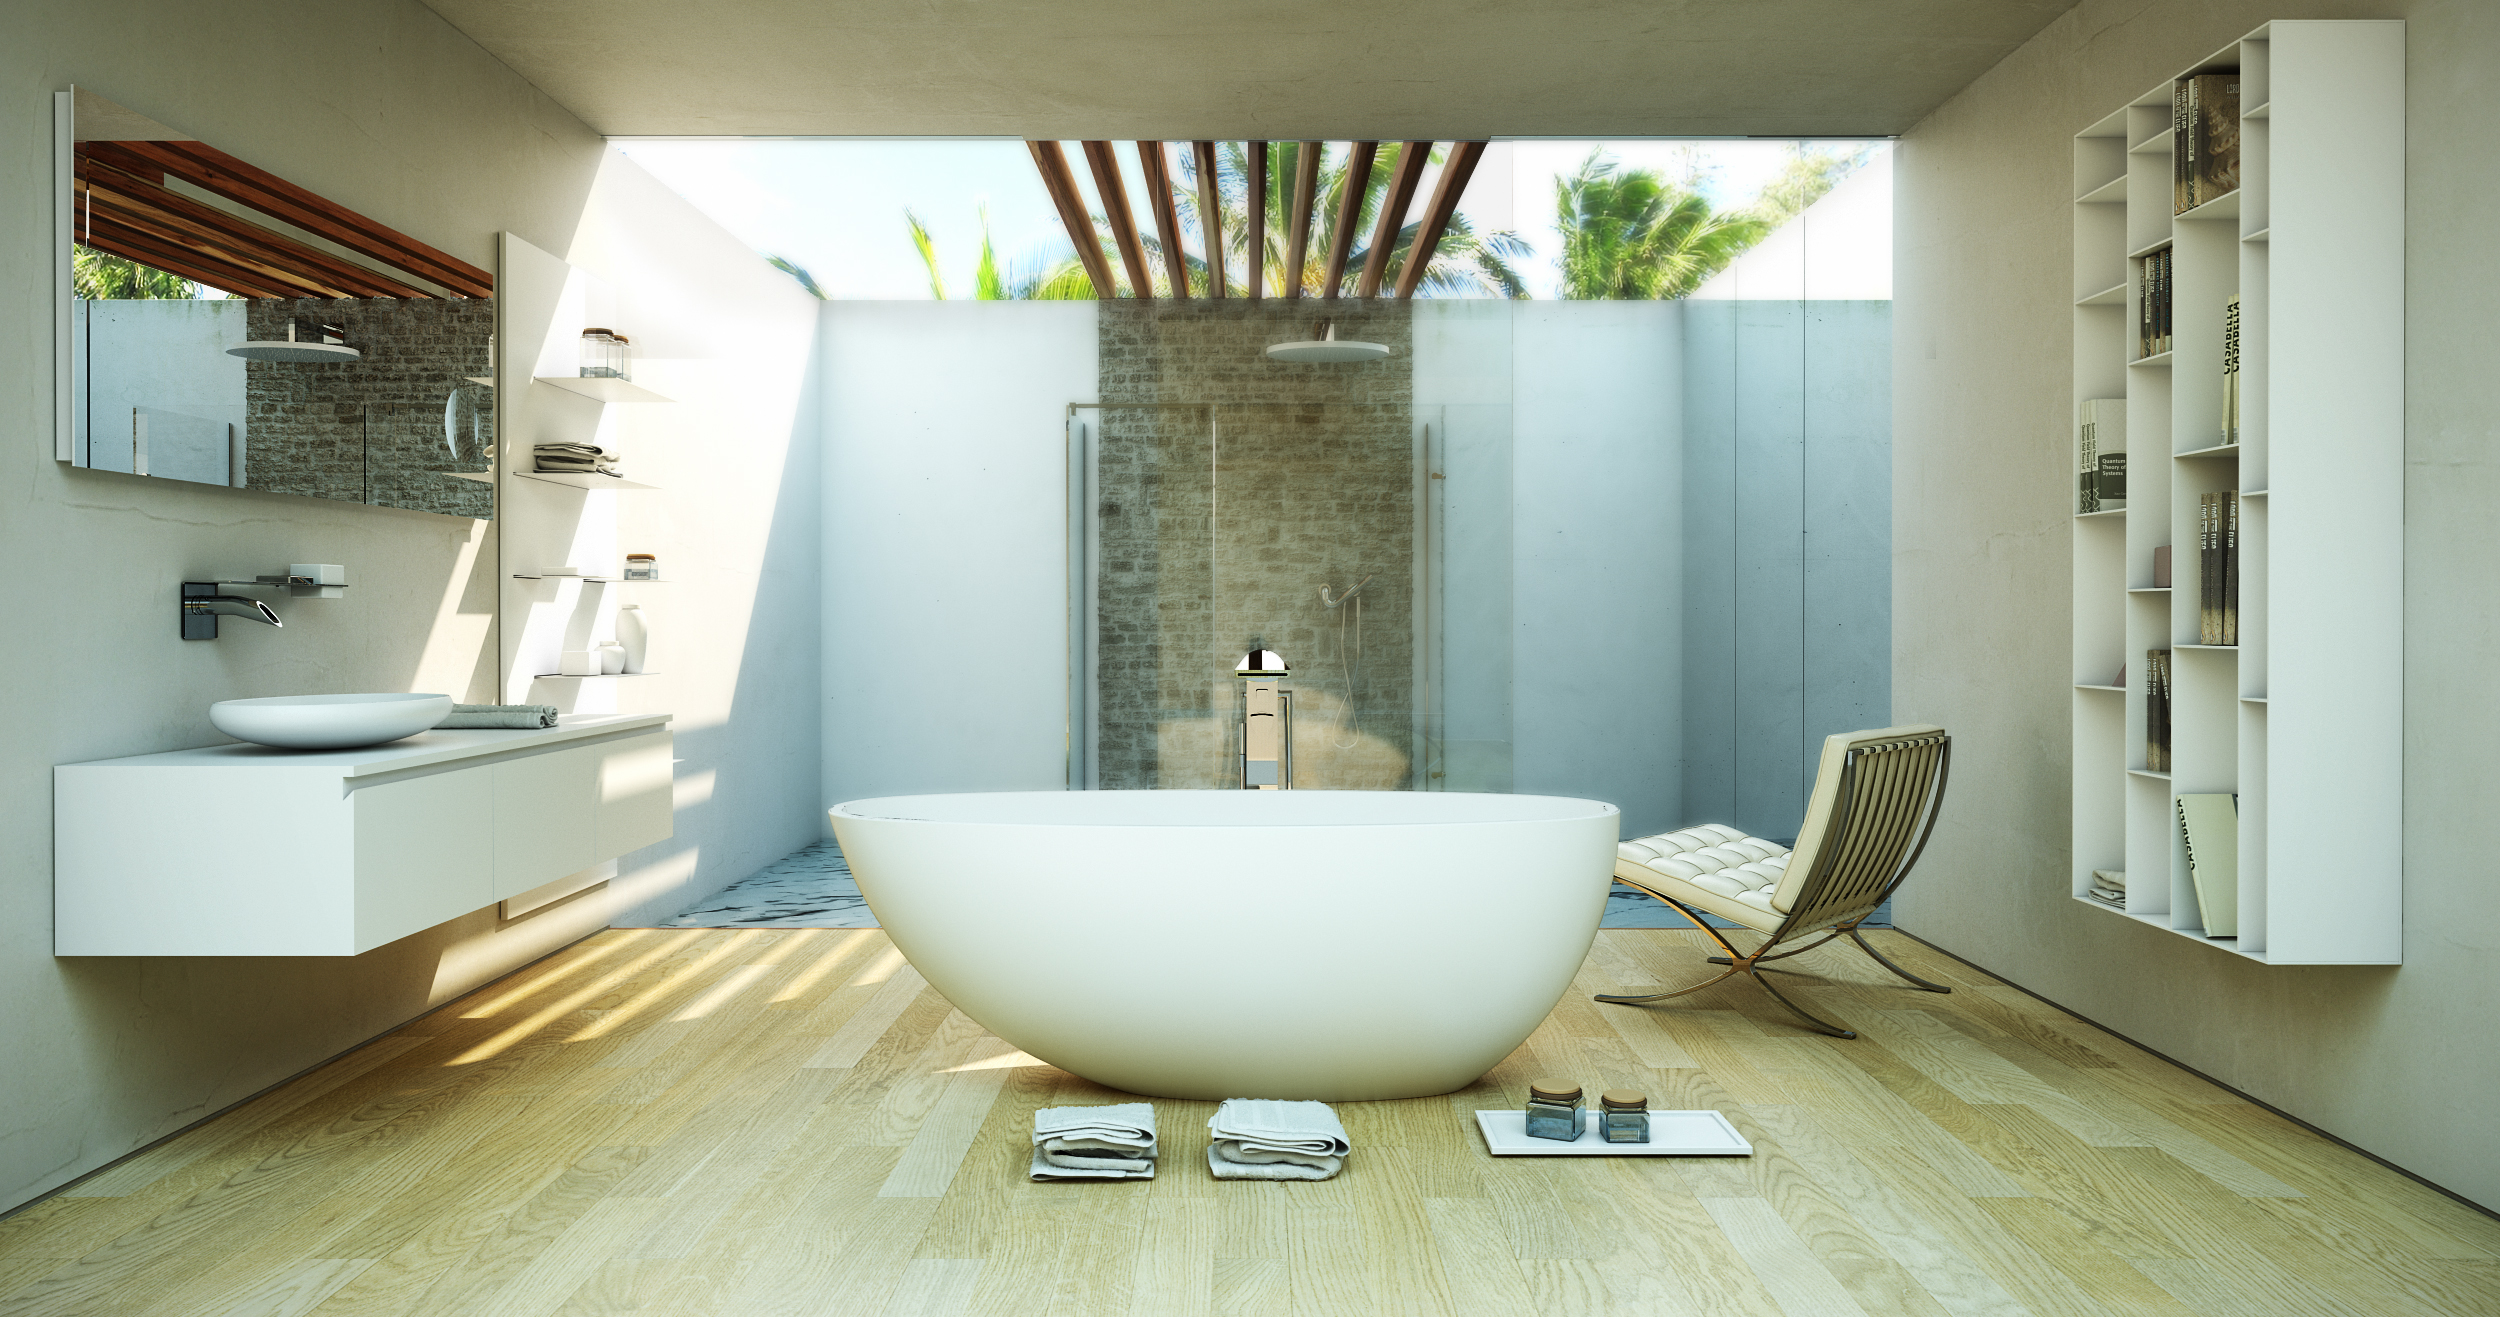 Platten Holzoptik Richner Baignoire Ovale Ruby Tub By Dimasi Bathroom By Archiplast